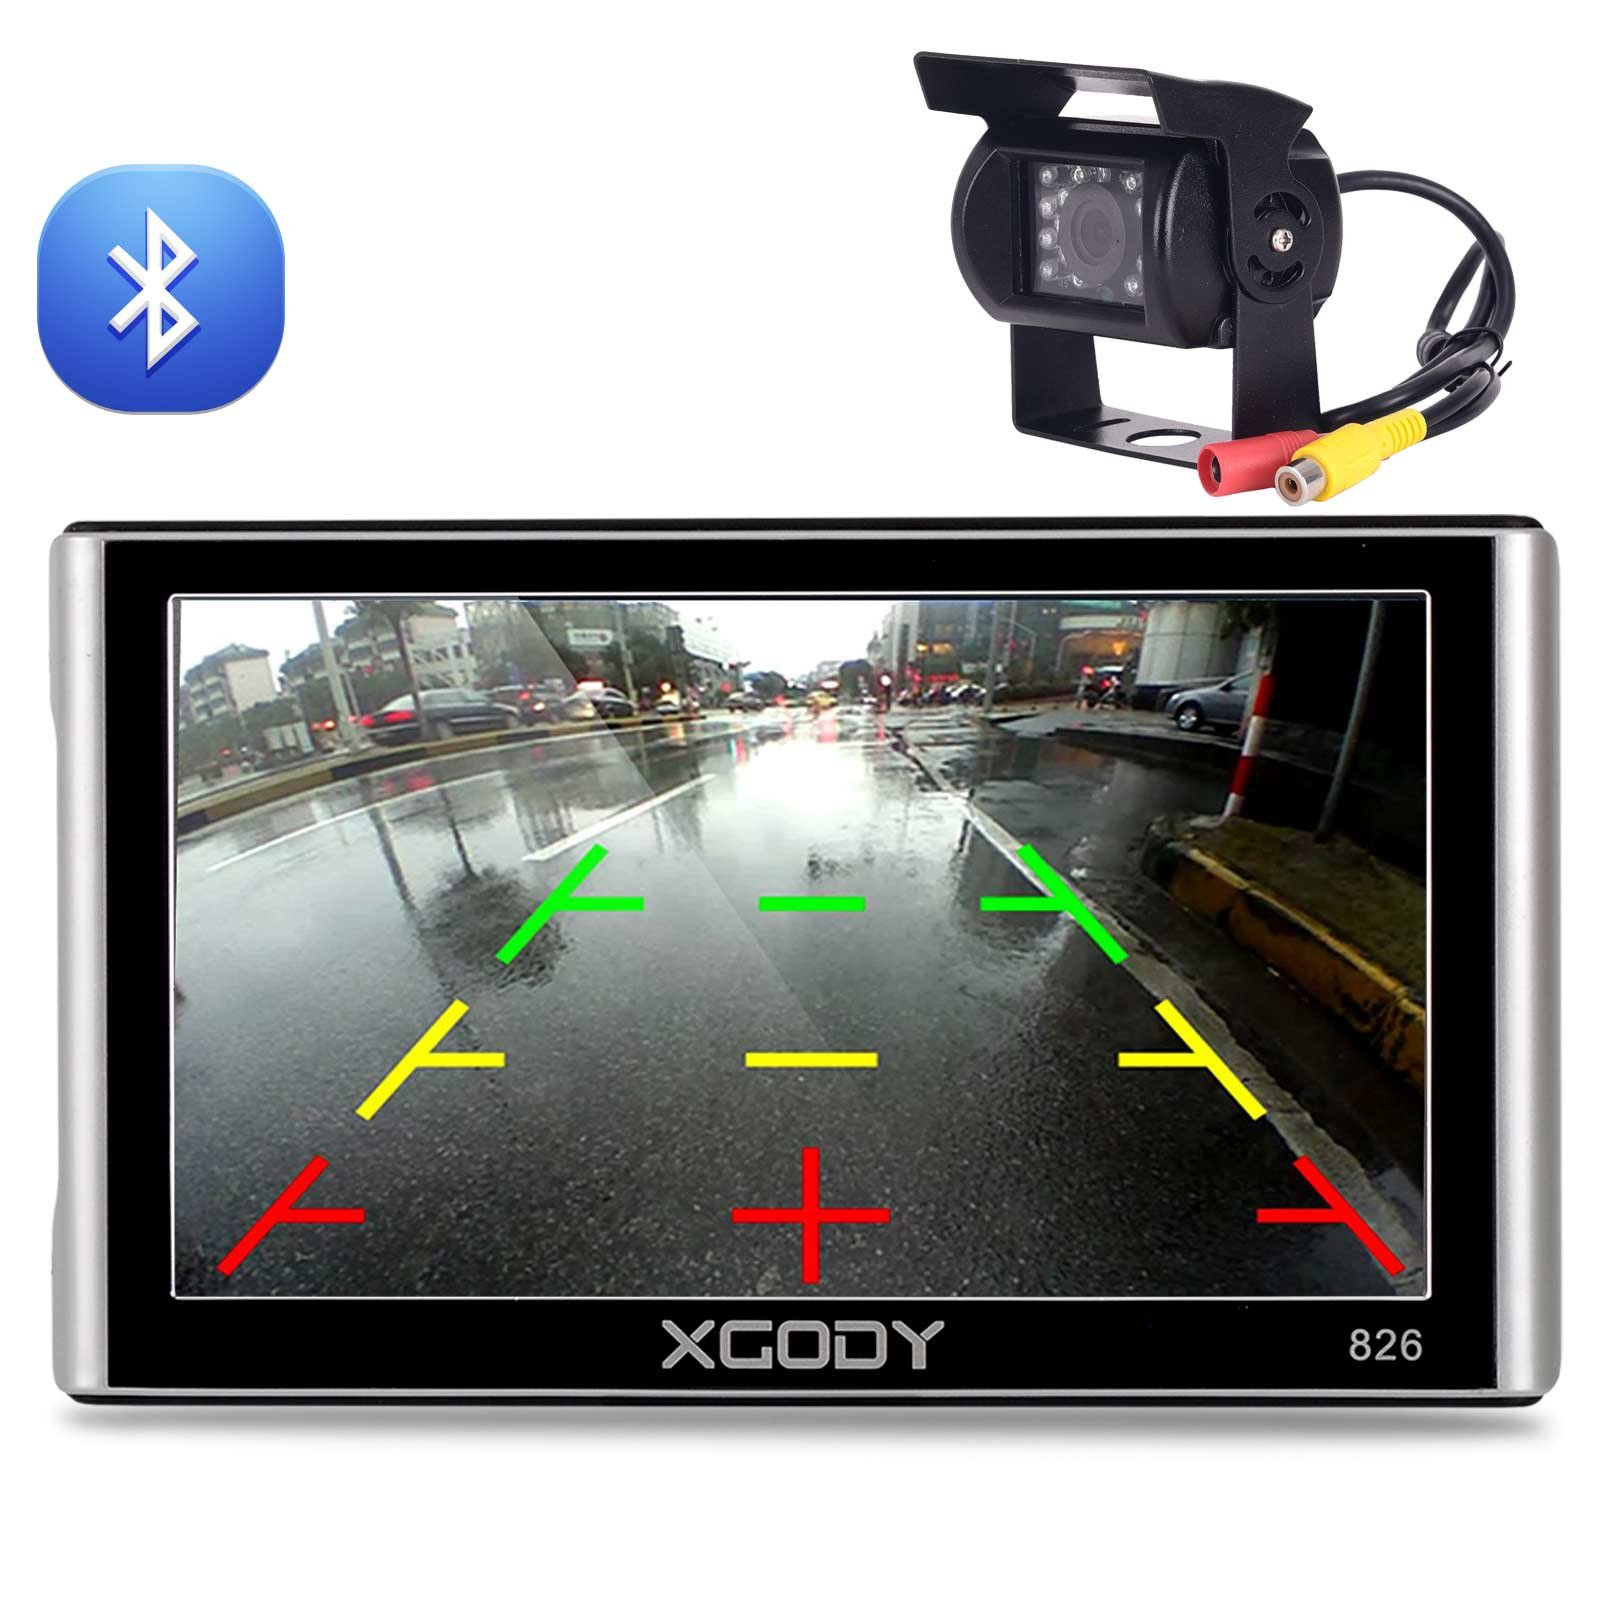 Xgody 826BT with 10 Meters Truck Camera 7 Inch RAM 256MB/ ROM 8GB with Sun Shade Bluetooth Capacitive Touchscreen SAT NAV Car GPS Navigation Lifetime Map Updates Speed Limit Displays (826BT+ Camera)